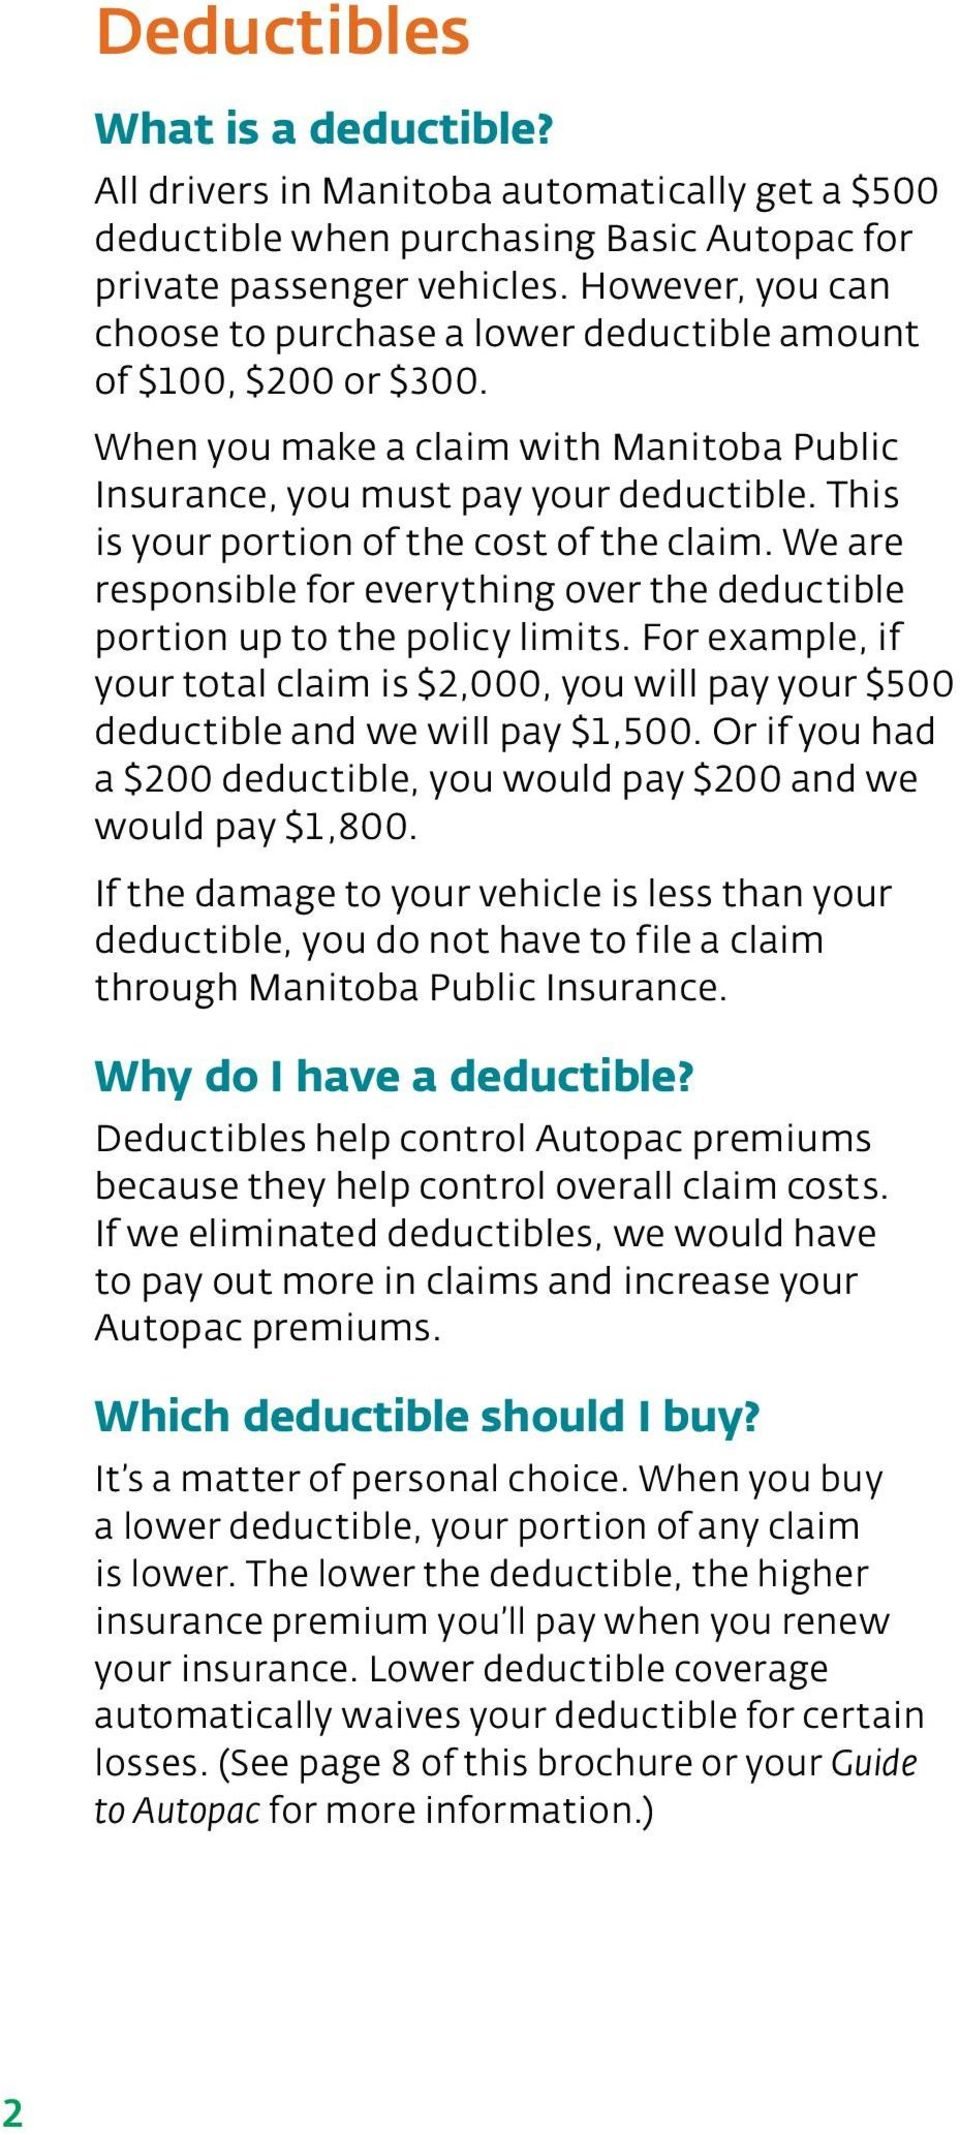 This is your portion of the cost of the claim. We are responsible for everything over the deductible portion up to the policy limits.